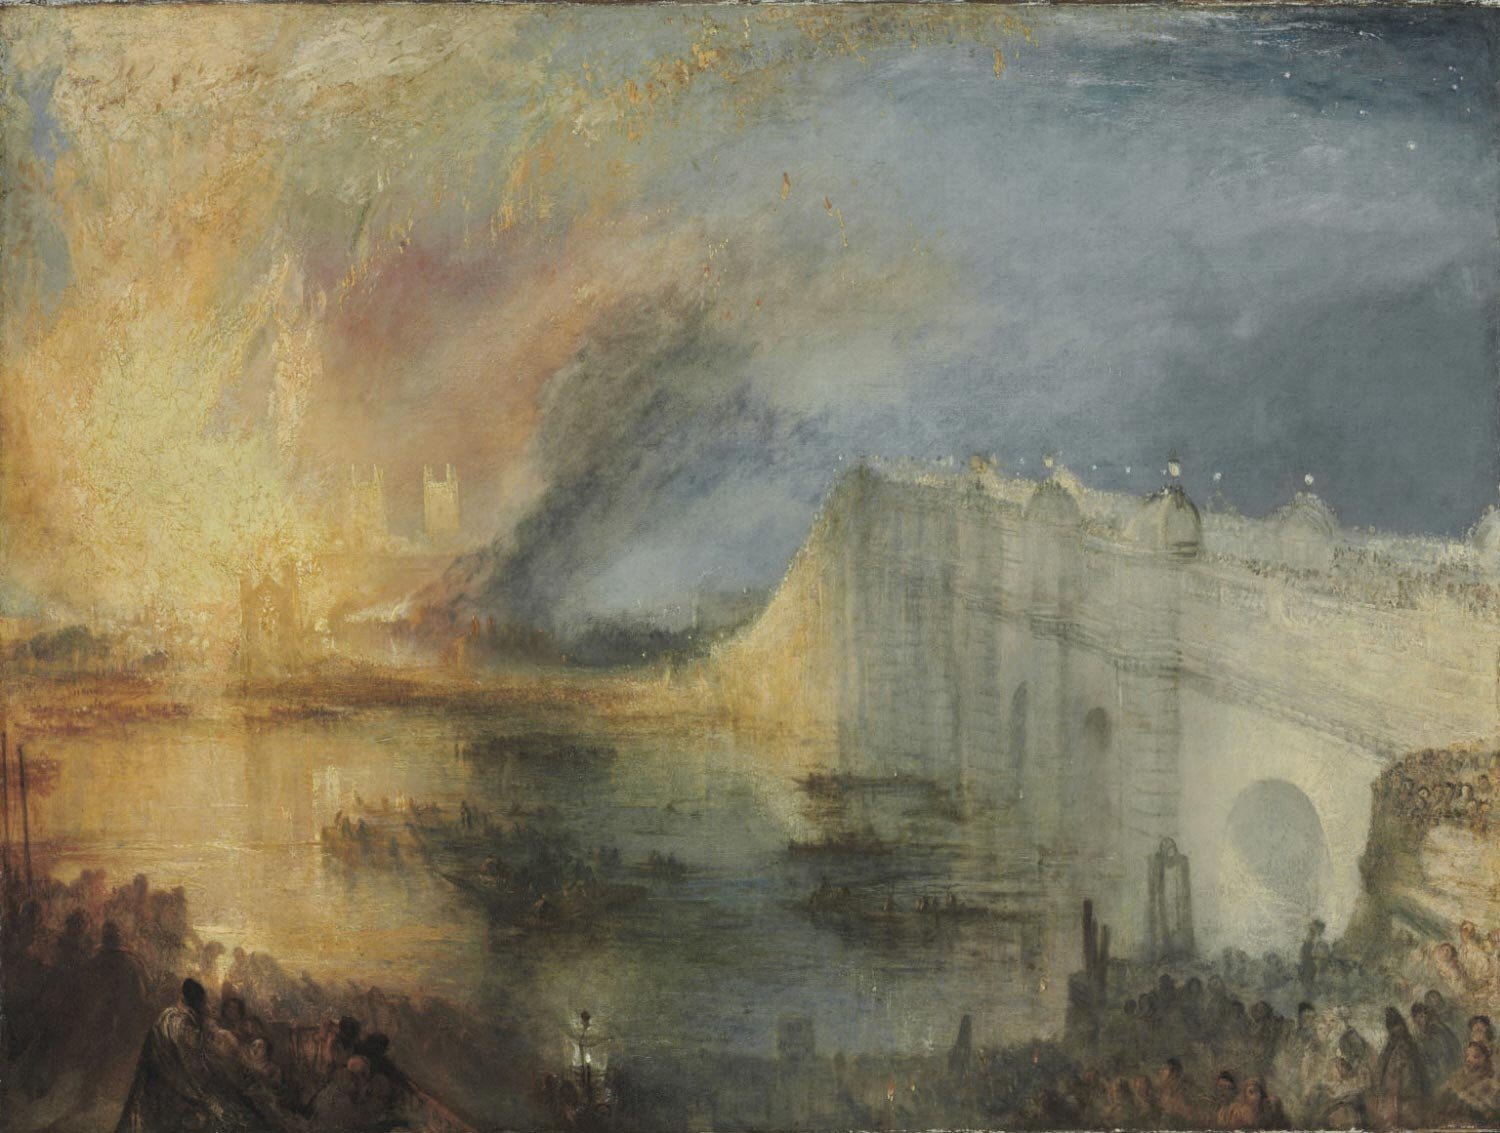 The Burning of the Houses of Lords and Commons, October 16, 1834